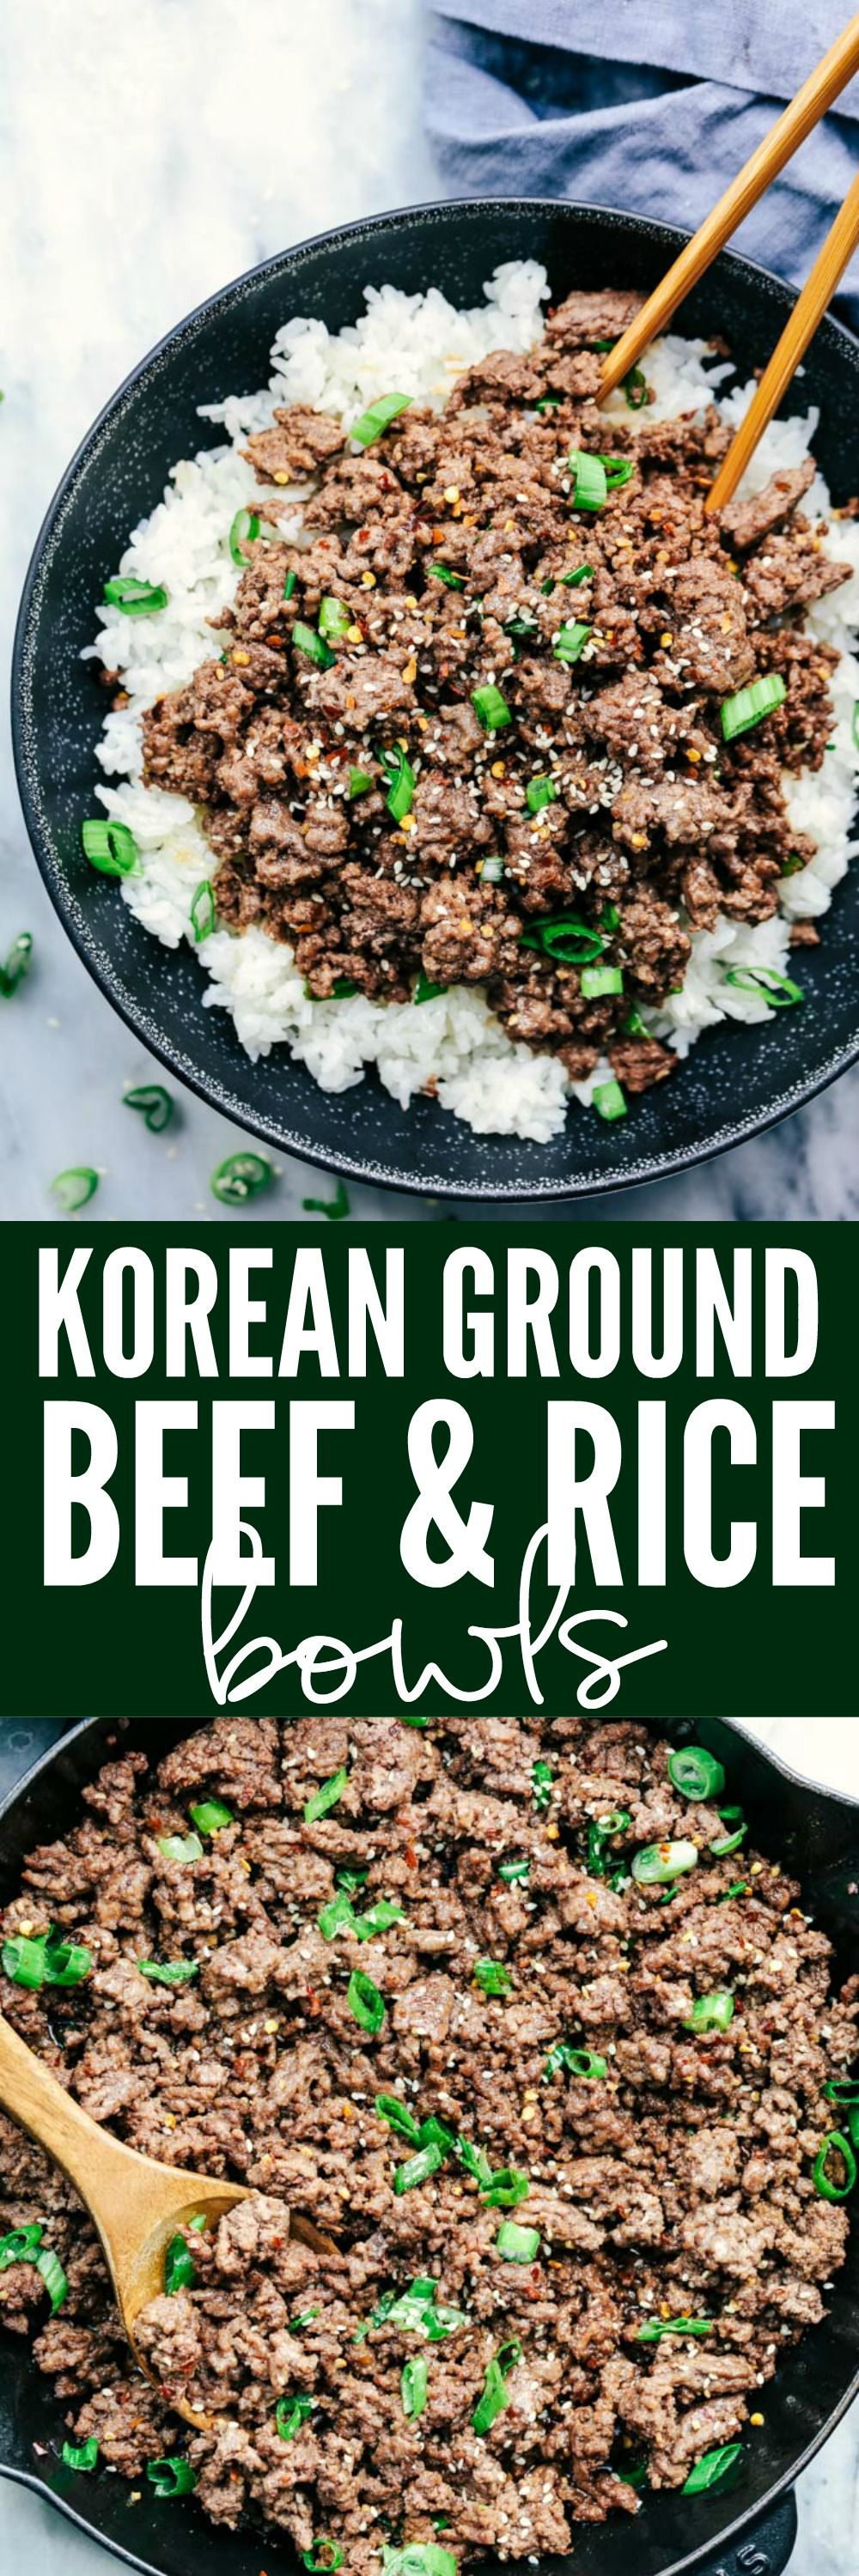 Korean Ground Beef And Rice Bowls Are So Incredibly Easy To Make And Will Become A Family Favorite This Makes The Beef Dinner Ground Beef Recipes Beef Recipes